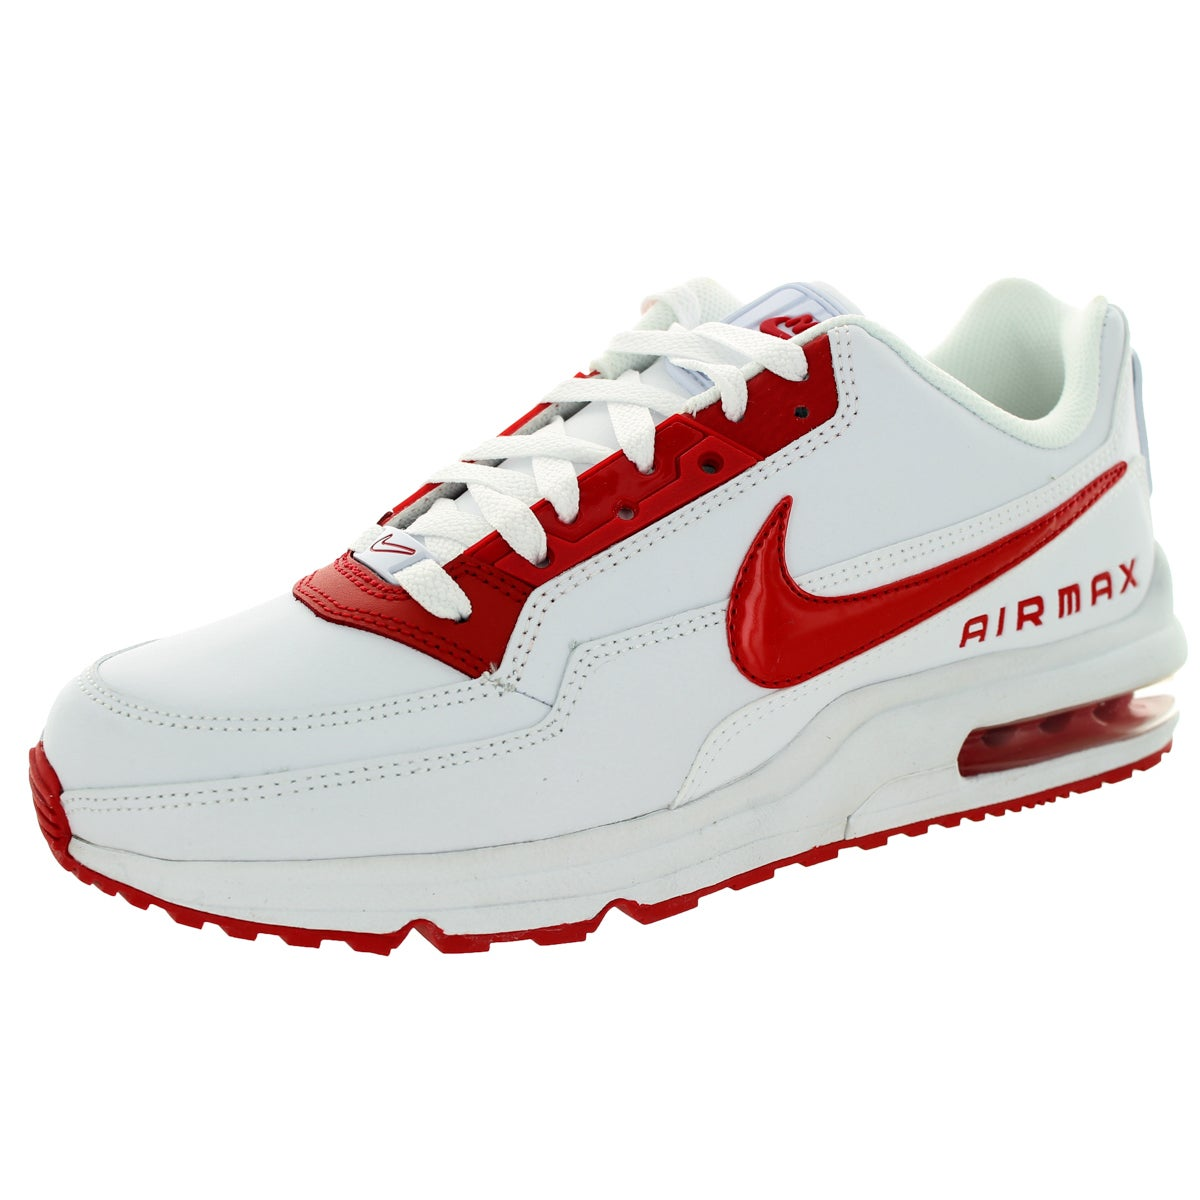 Nike Men's Air Max LTD 3 WhiteUniversity Red Running Shoe